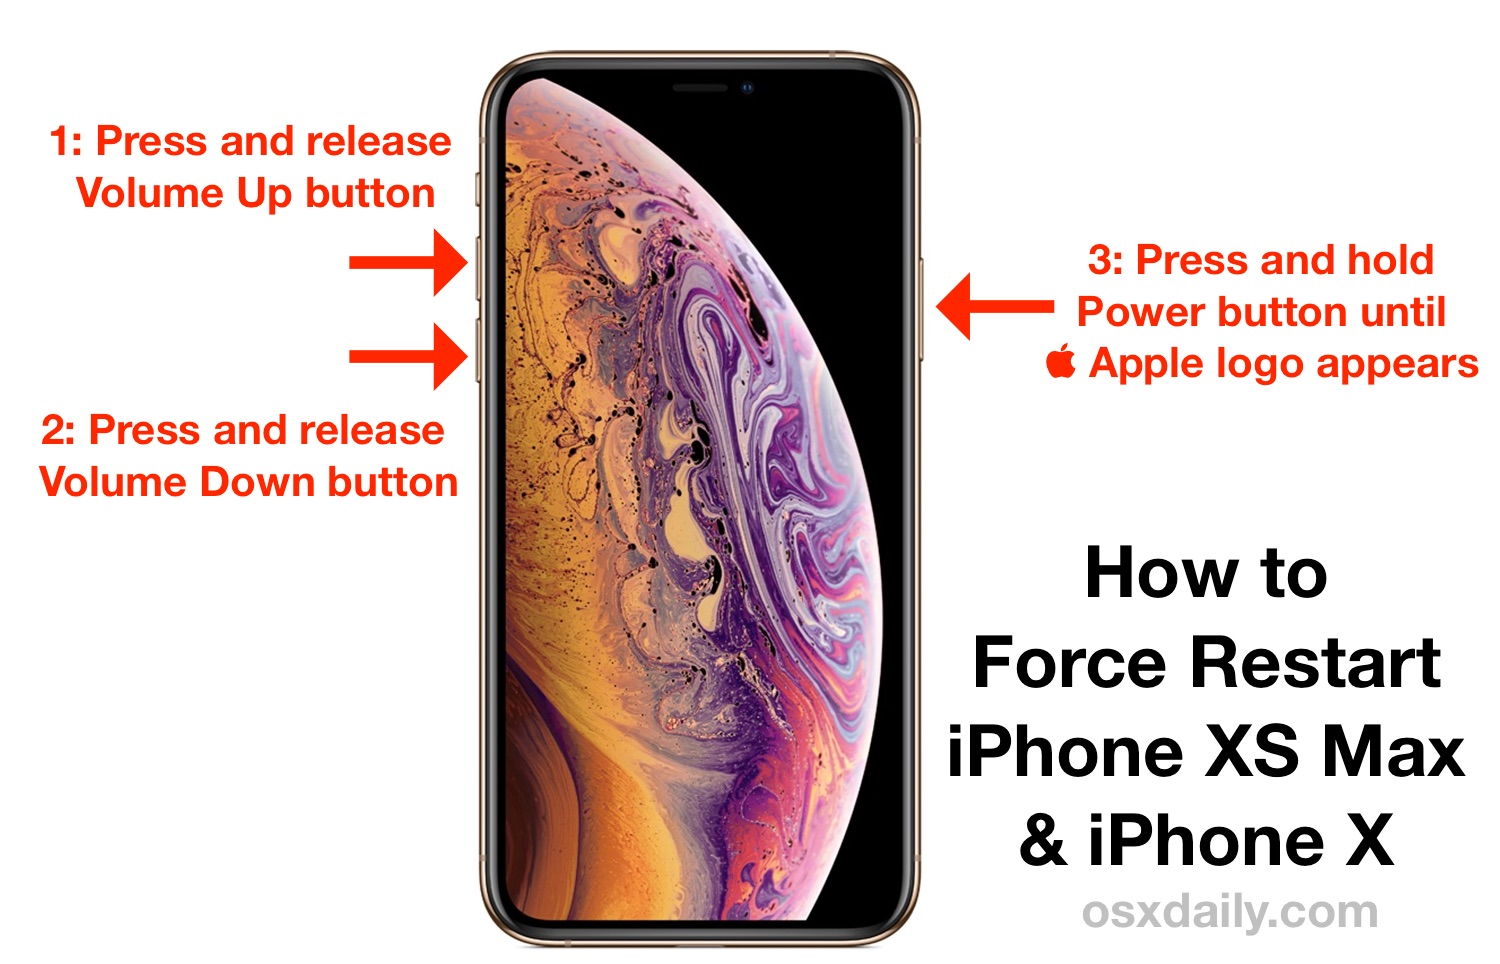 How to force restart iPhone XS Max and iPhone XS